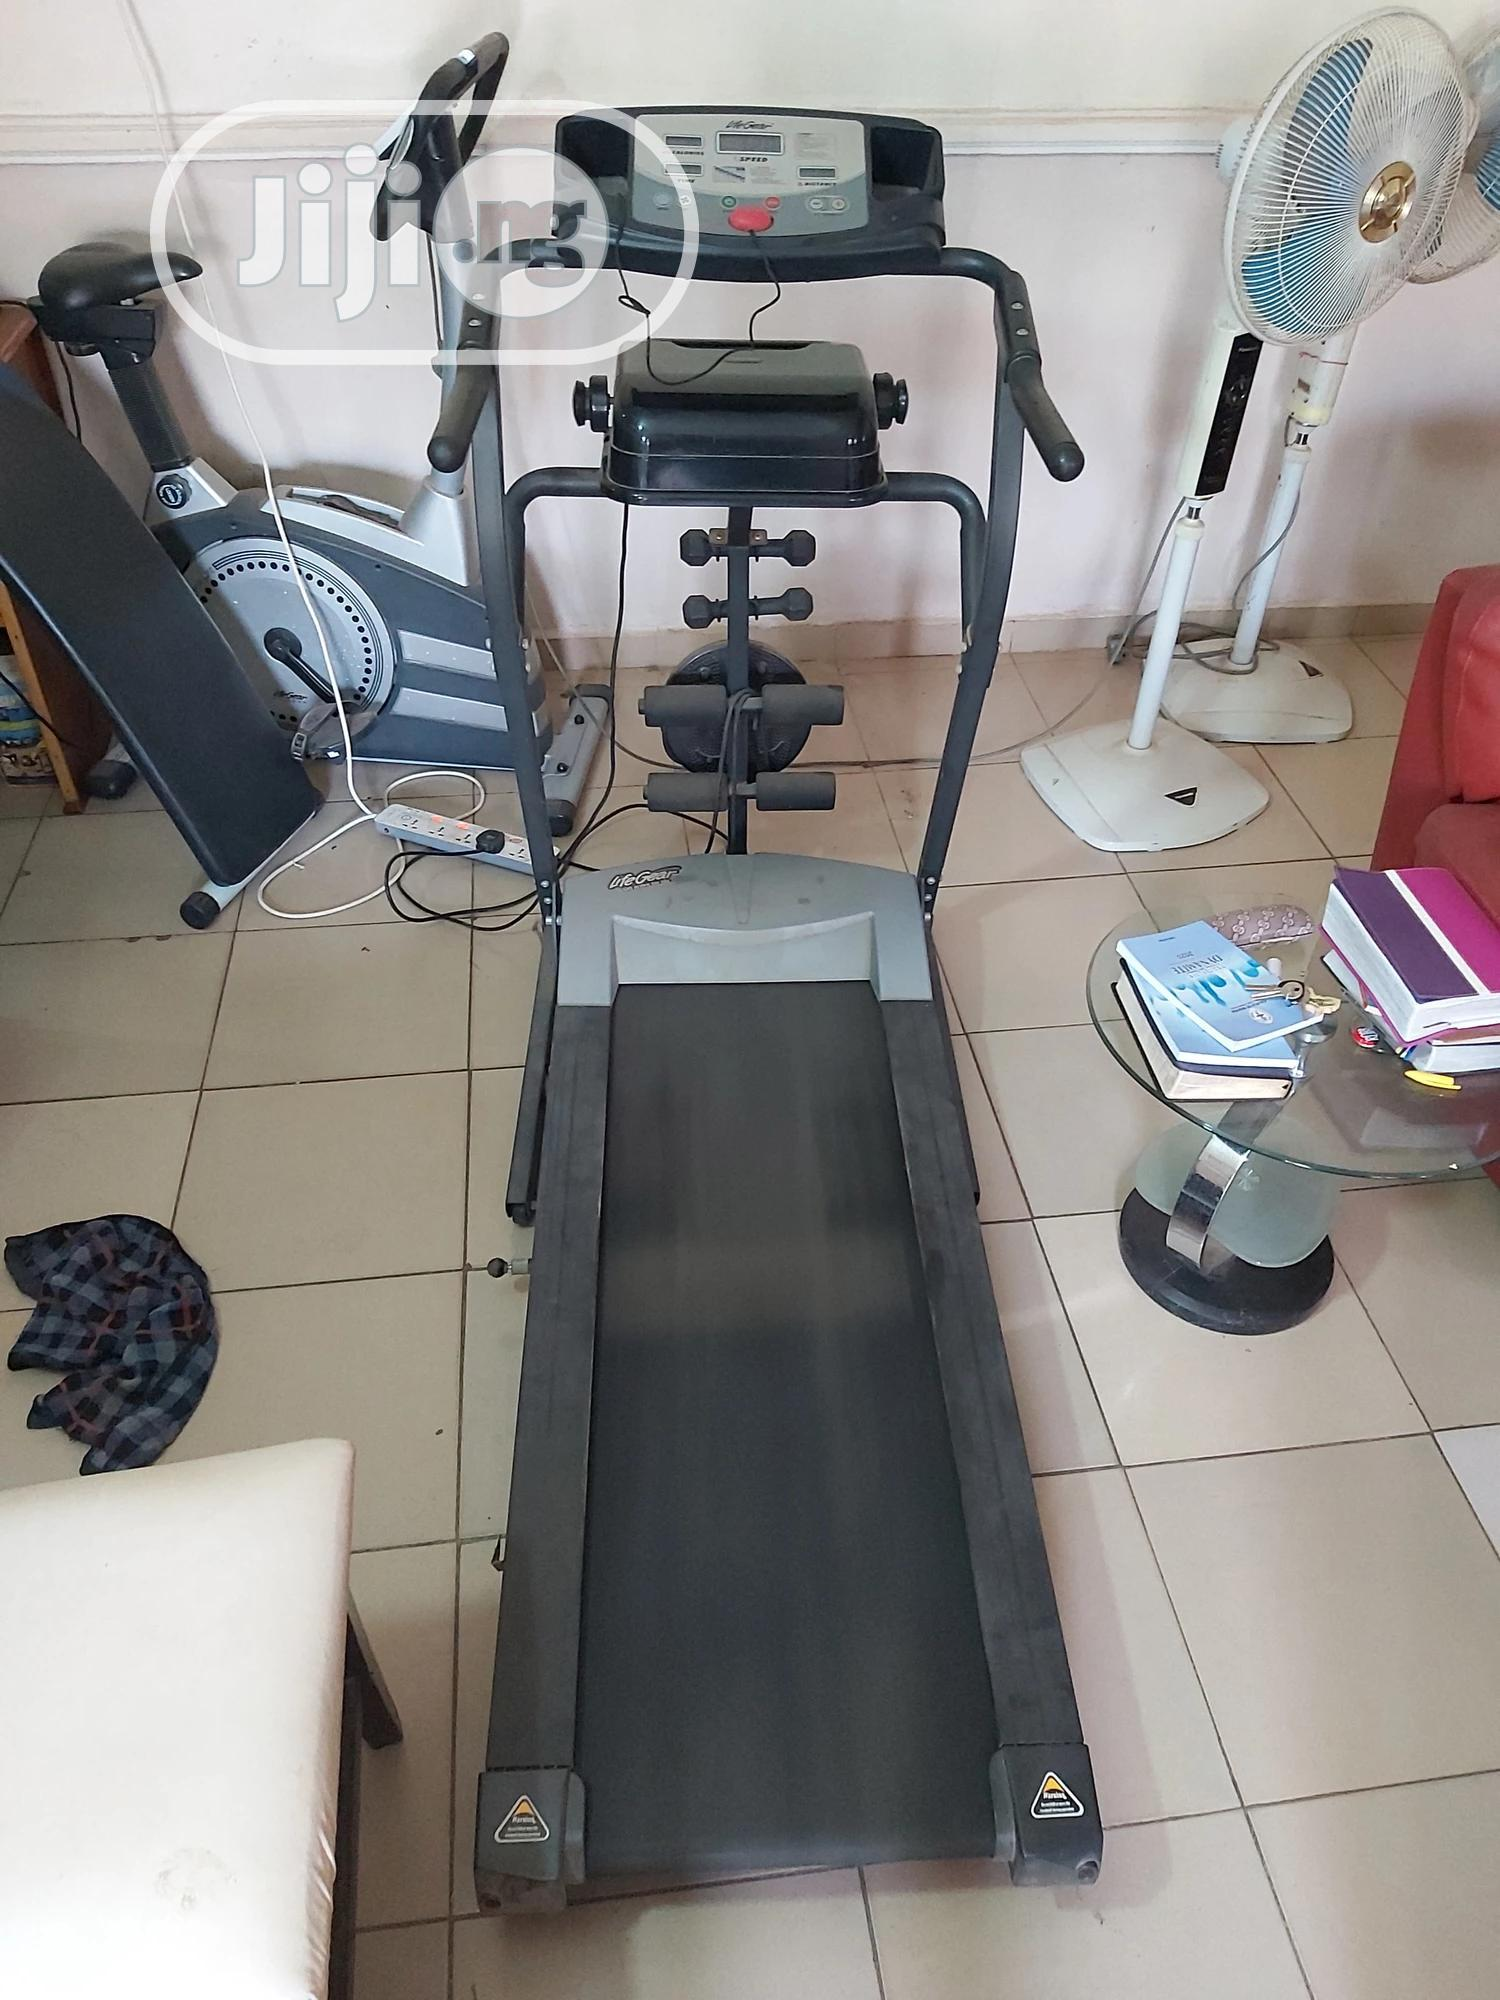 Archive: A Life Gear Treadmill